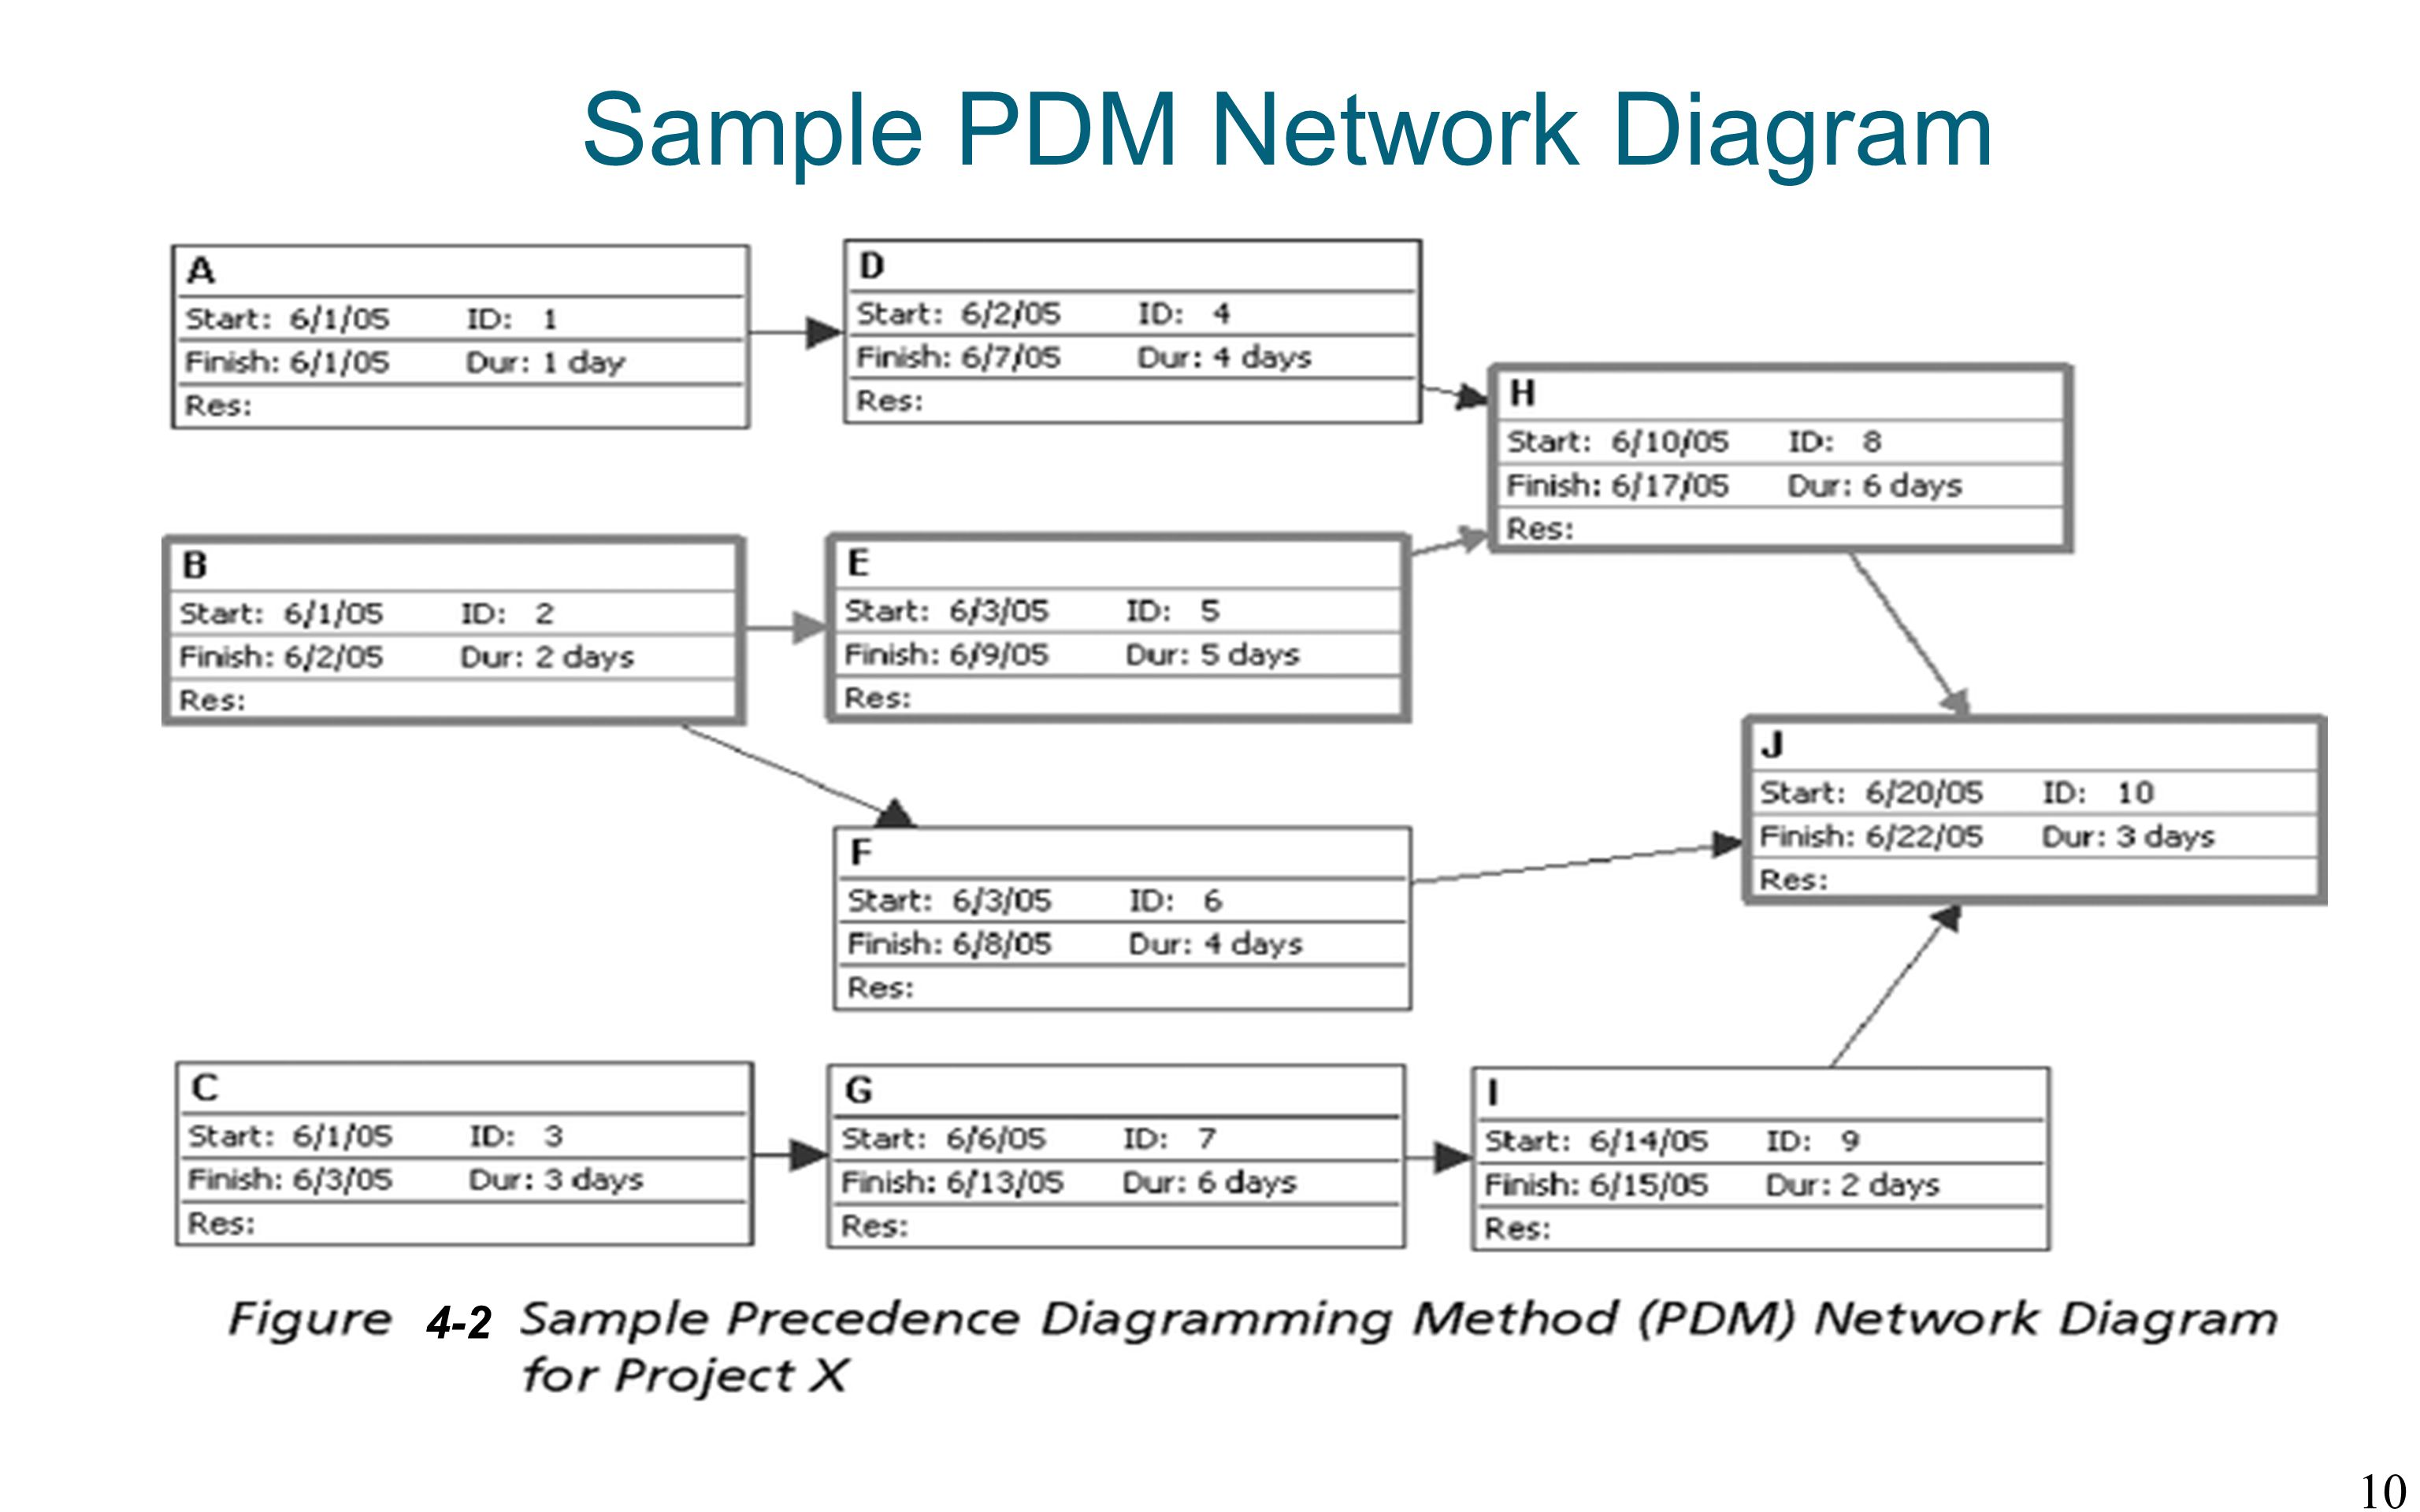 Task dependencies is important in developing a project network diagram